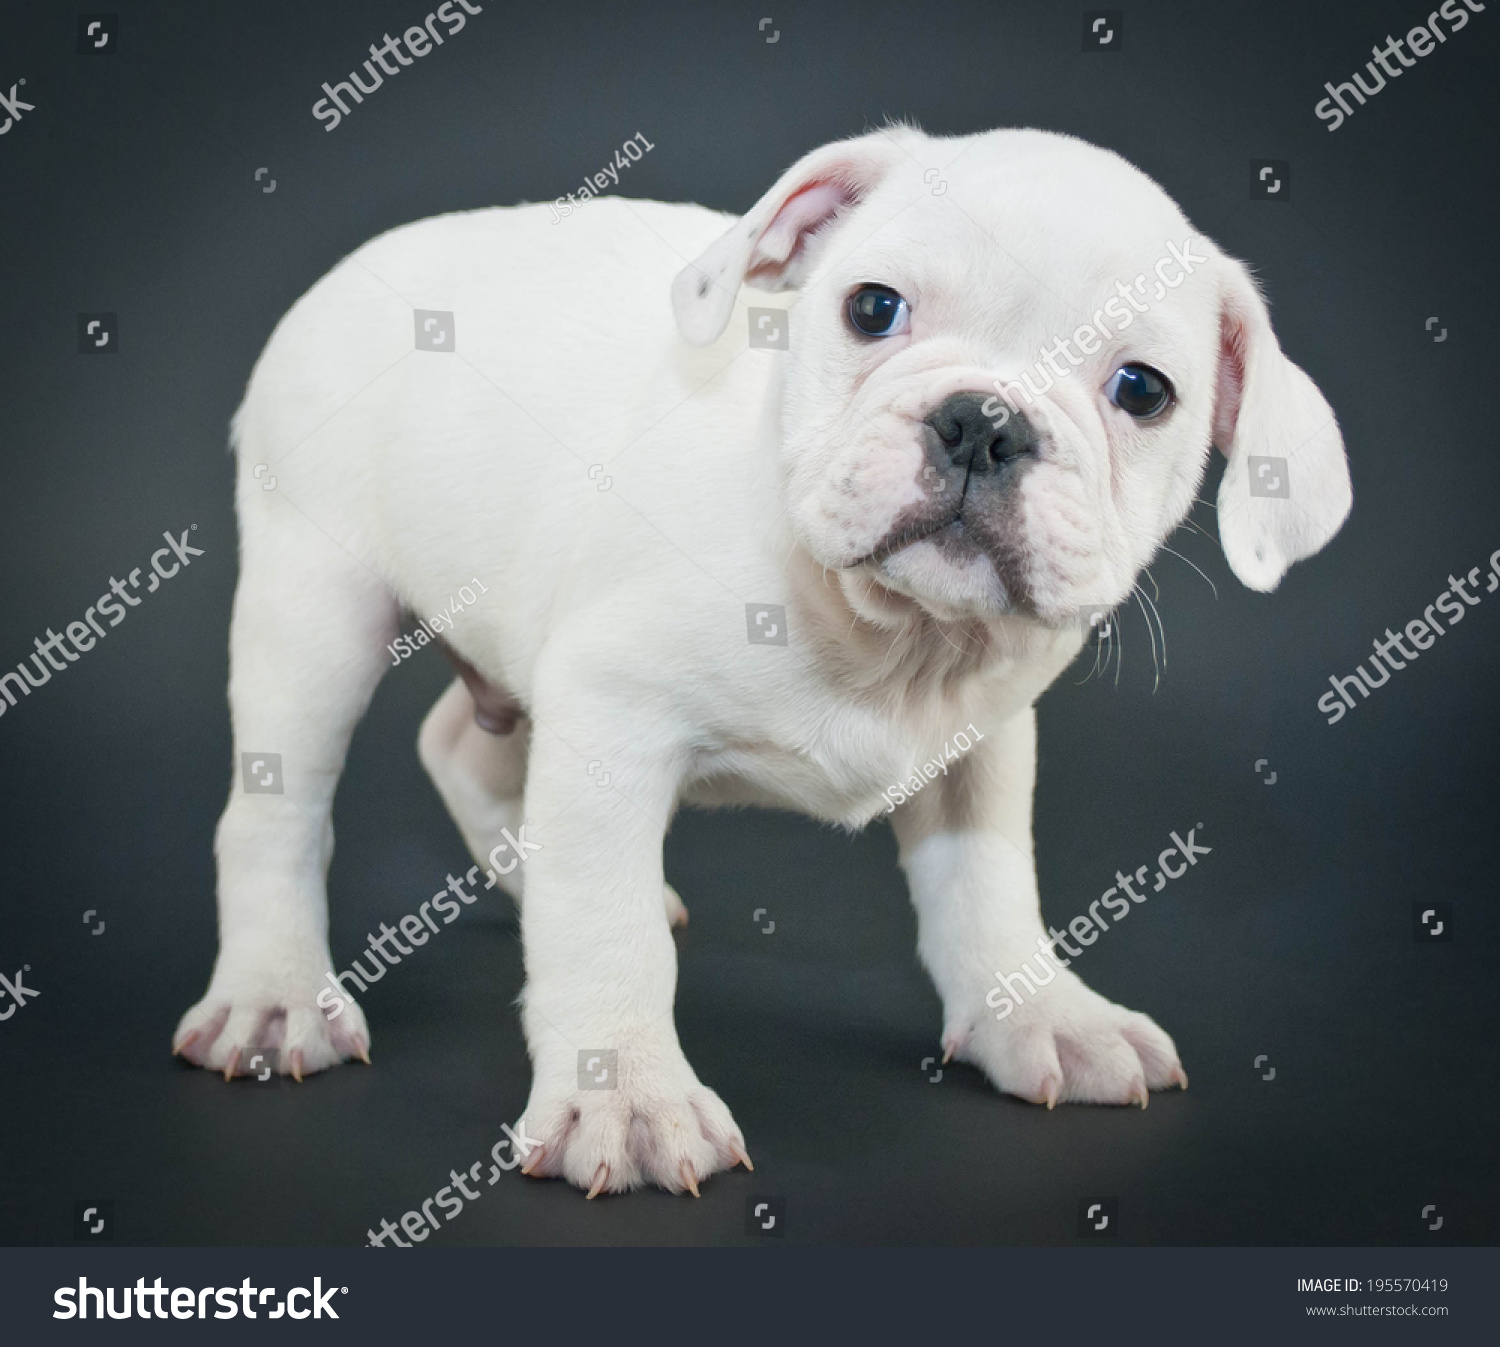 Cute White English Bulldog Puppy Standing Stock Photo Edit Now 195570419